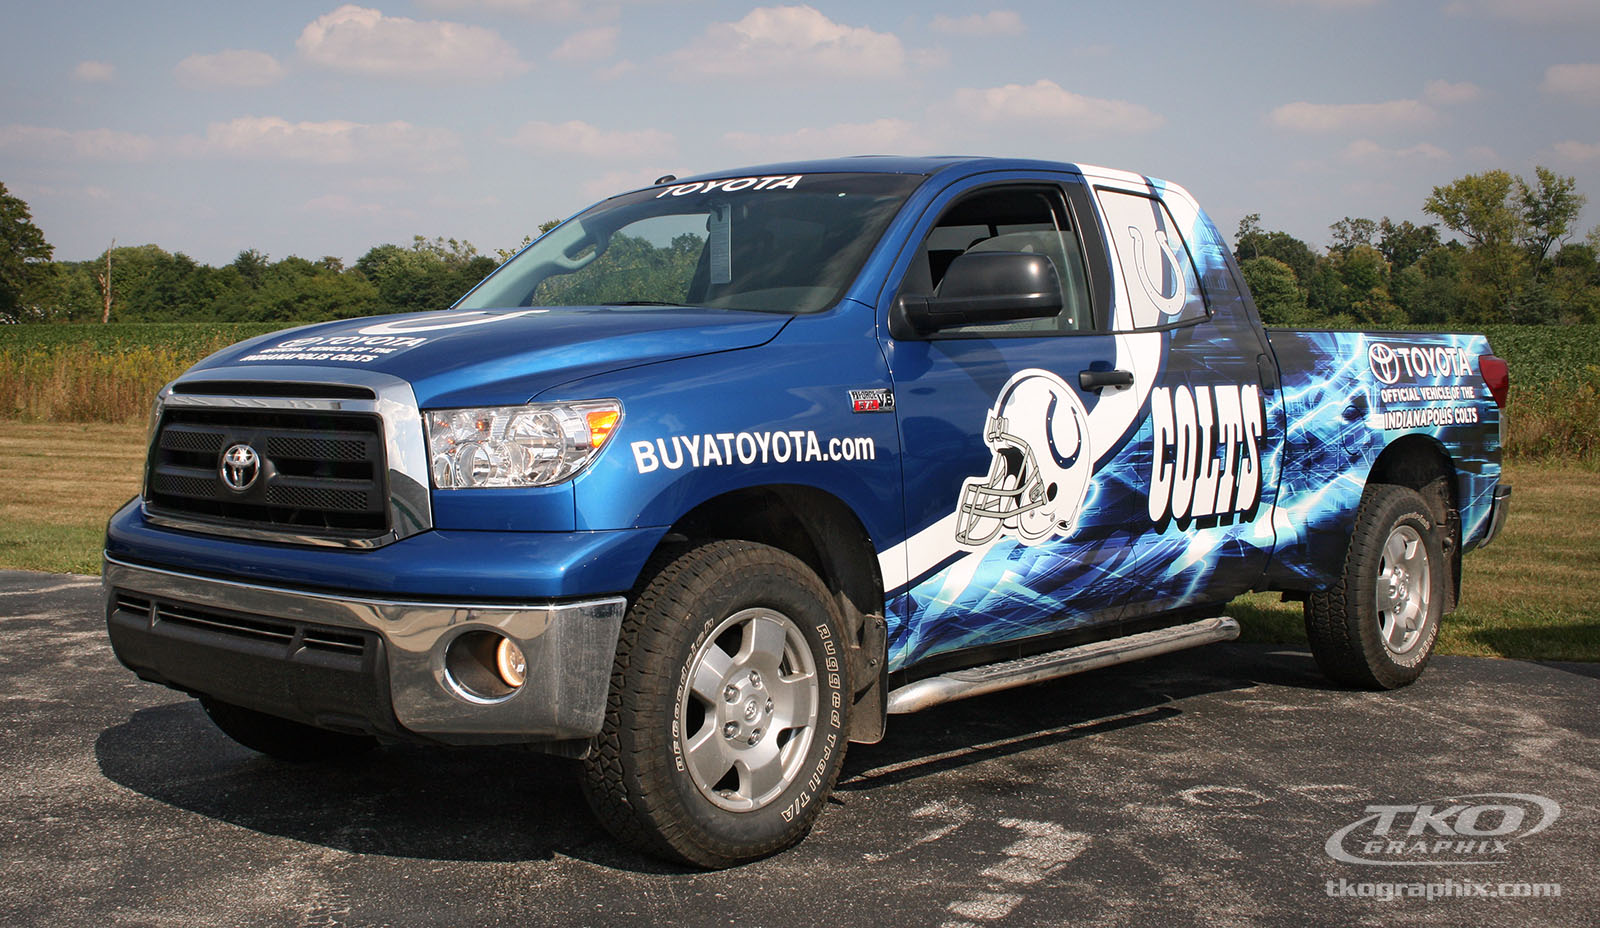 The Colts and Vehicle Graphics